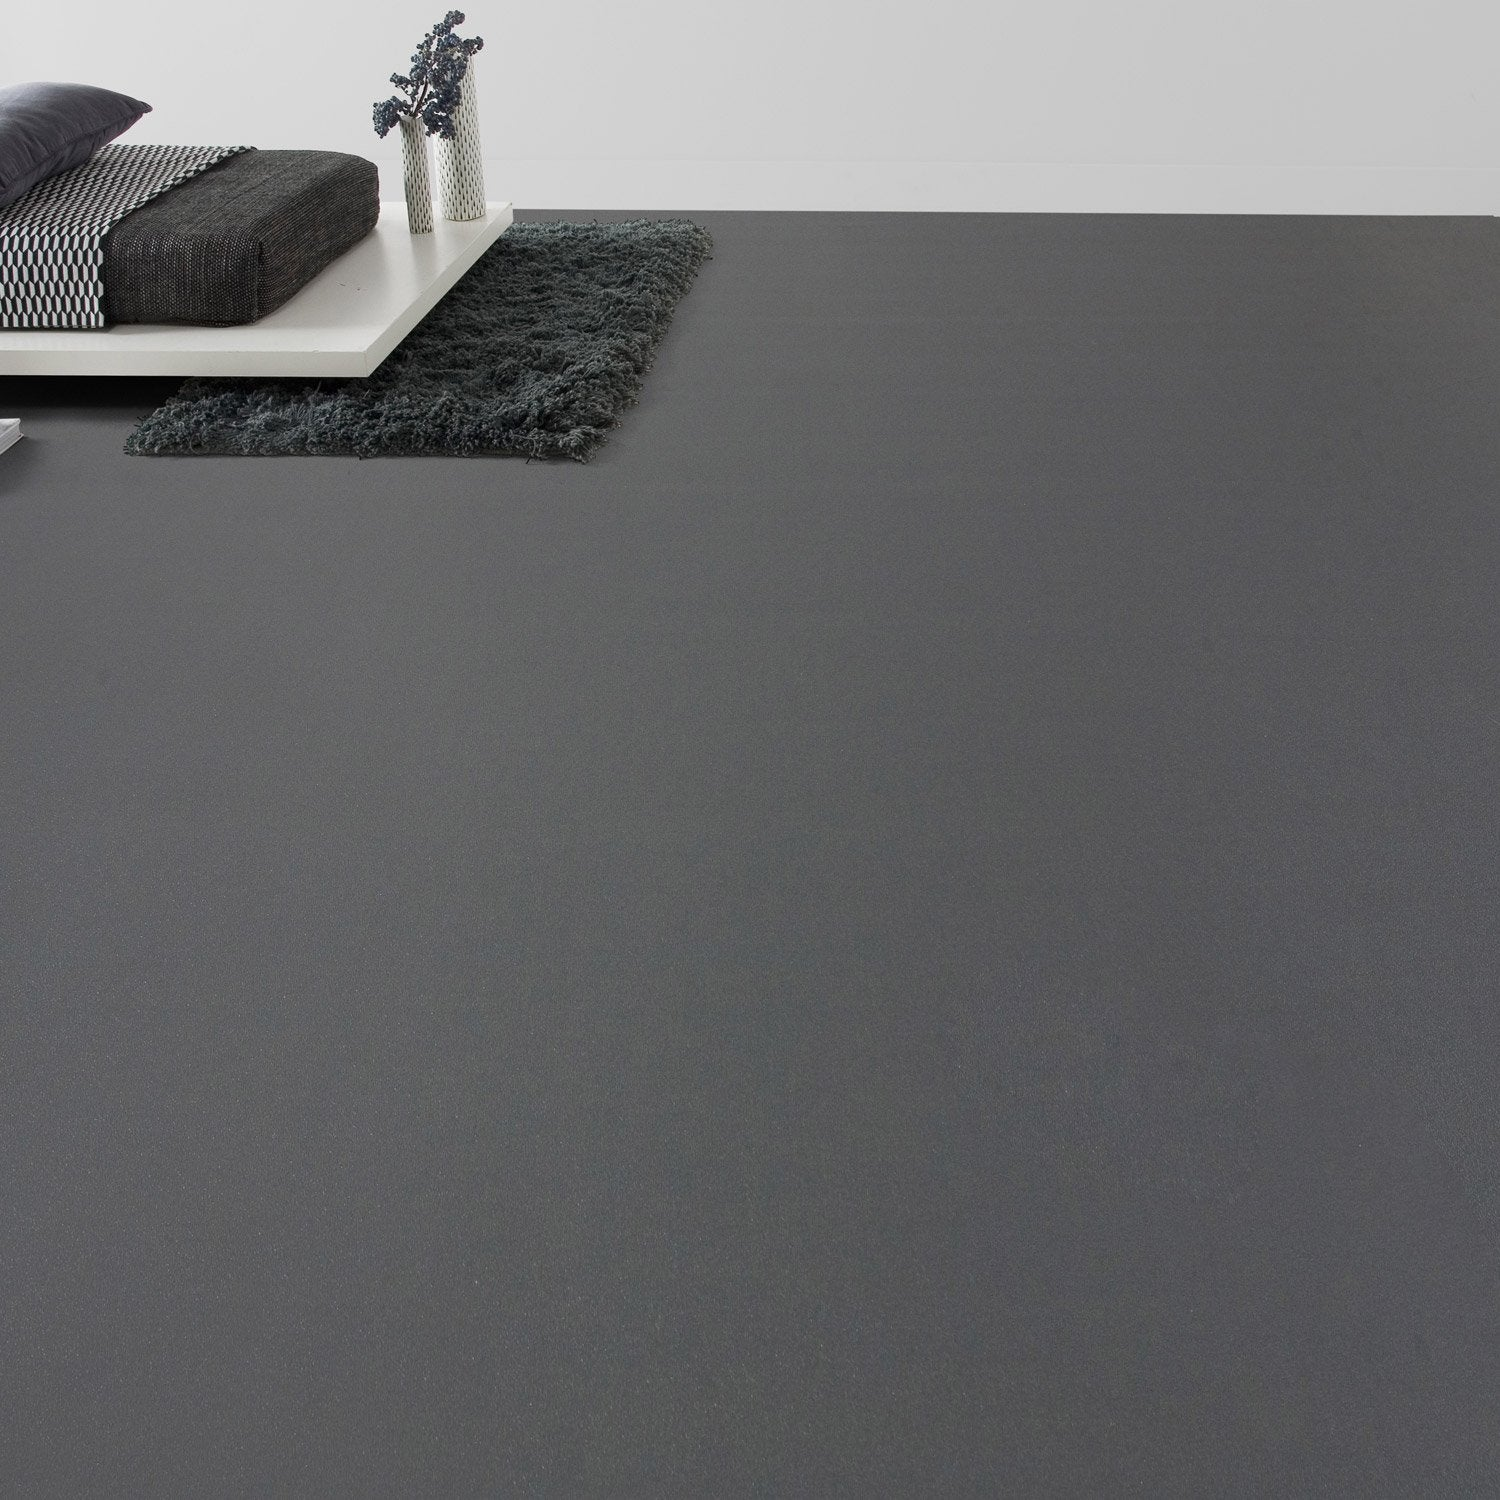 Sol pvc anthracite gris zingu aero l 4 m leroy merlin for Portillon pvc gris anthracite